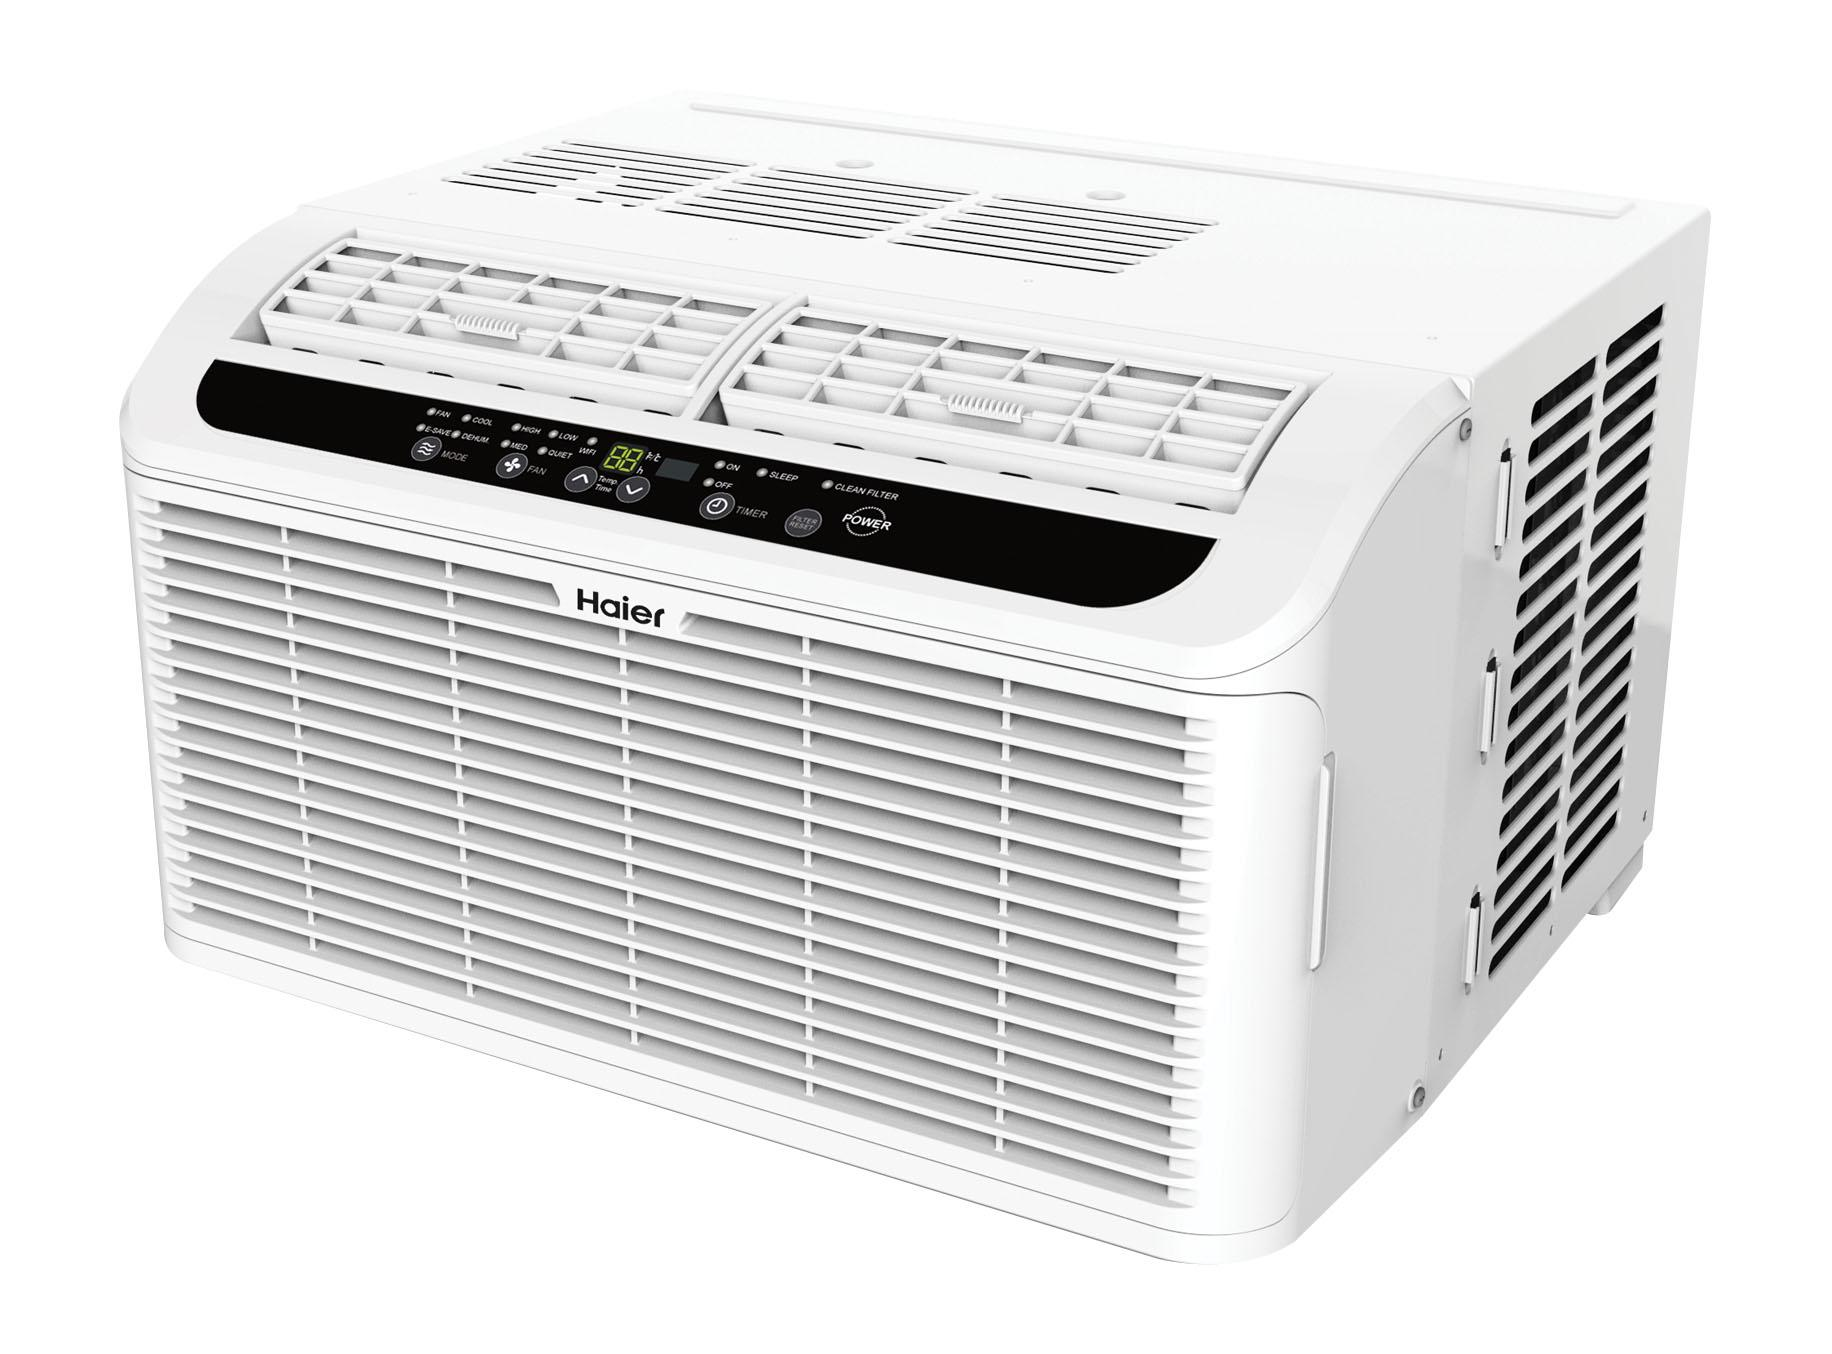 Series 6050 BTU 115V Window Air Conditioner with LED Remote Control #515D2C